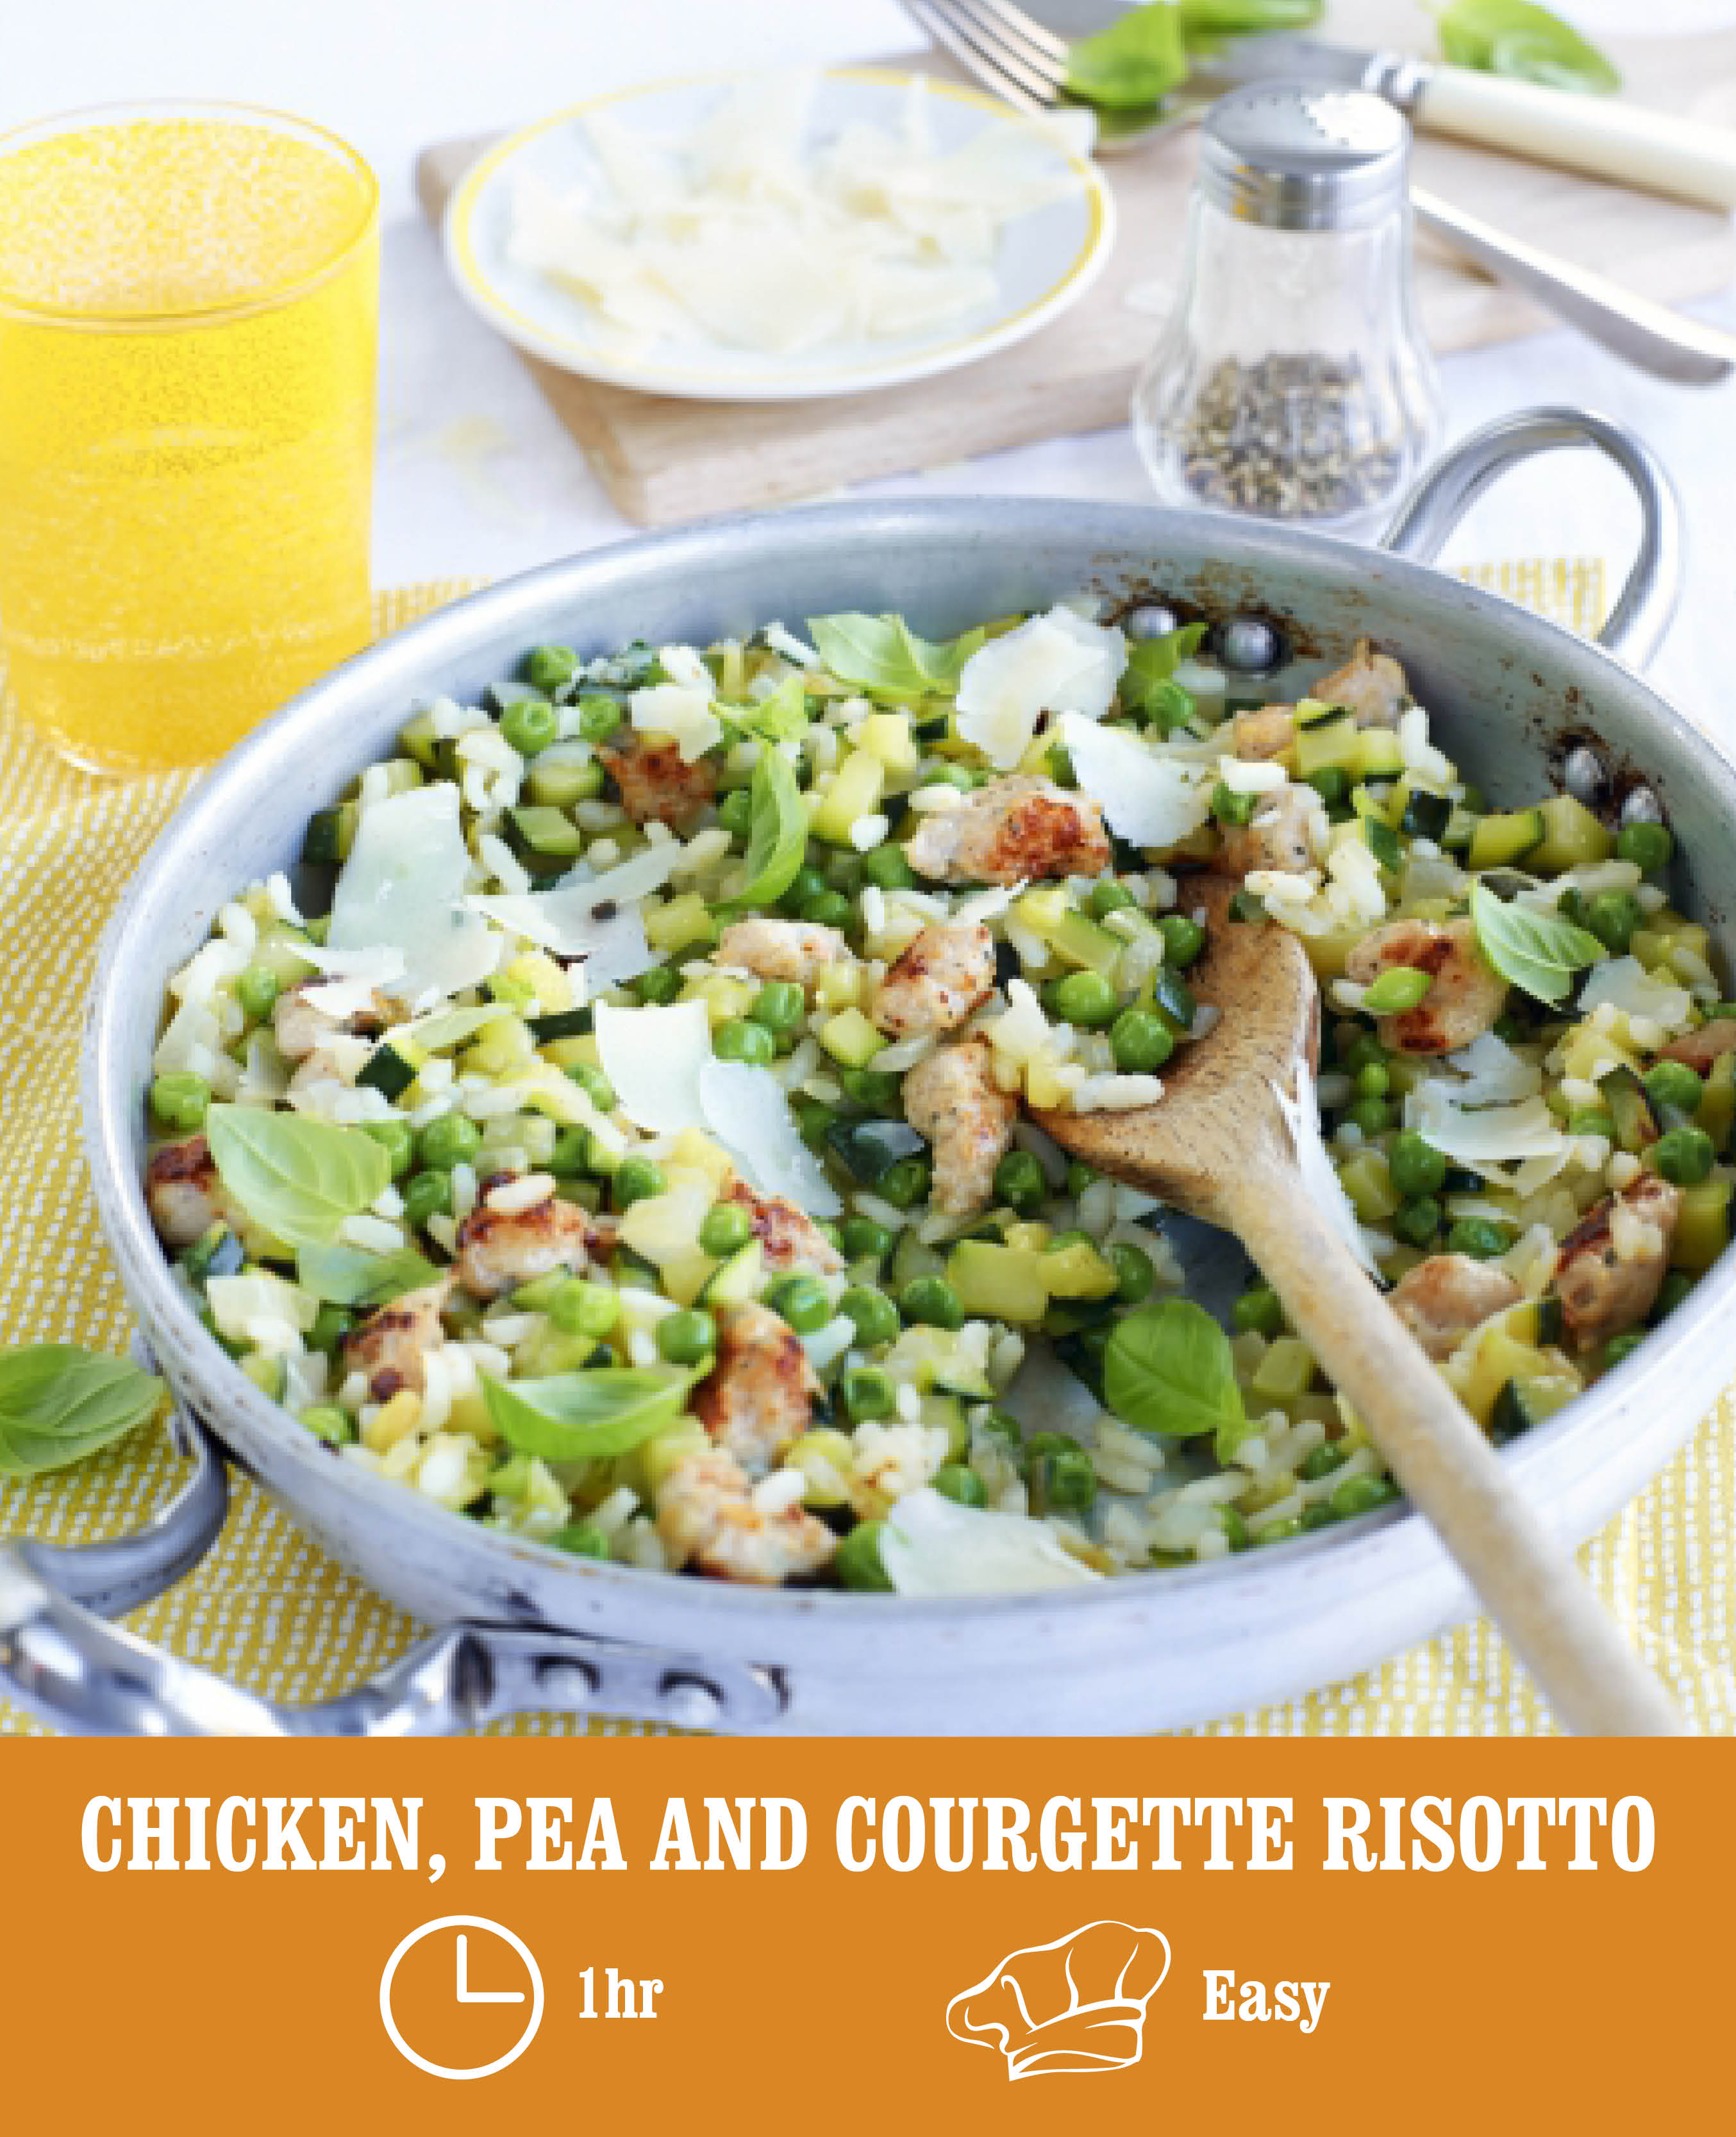 CHICKEN SAUSAGE, PEA AND COURGETTE RISOTTO